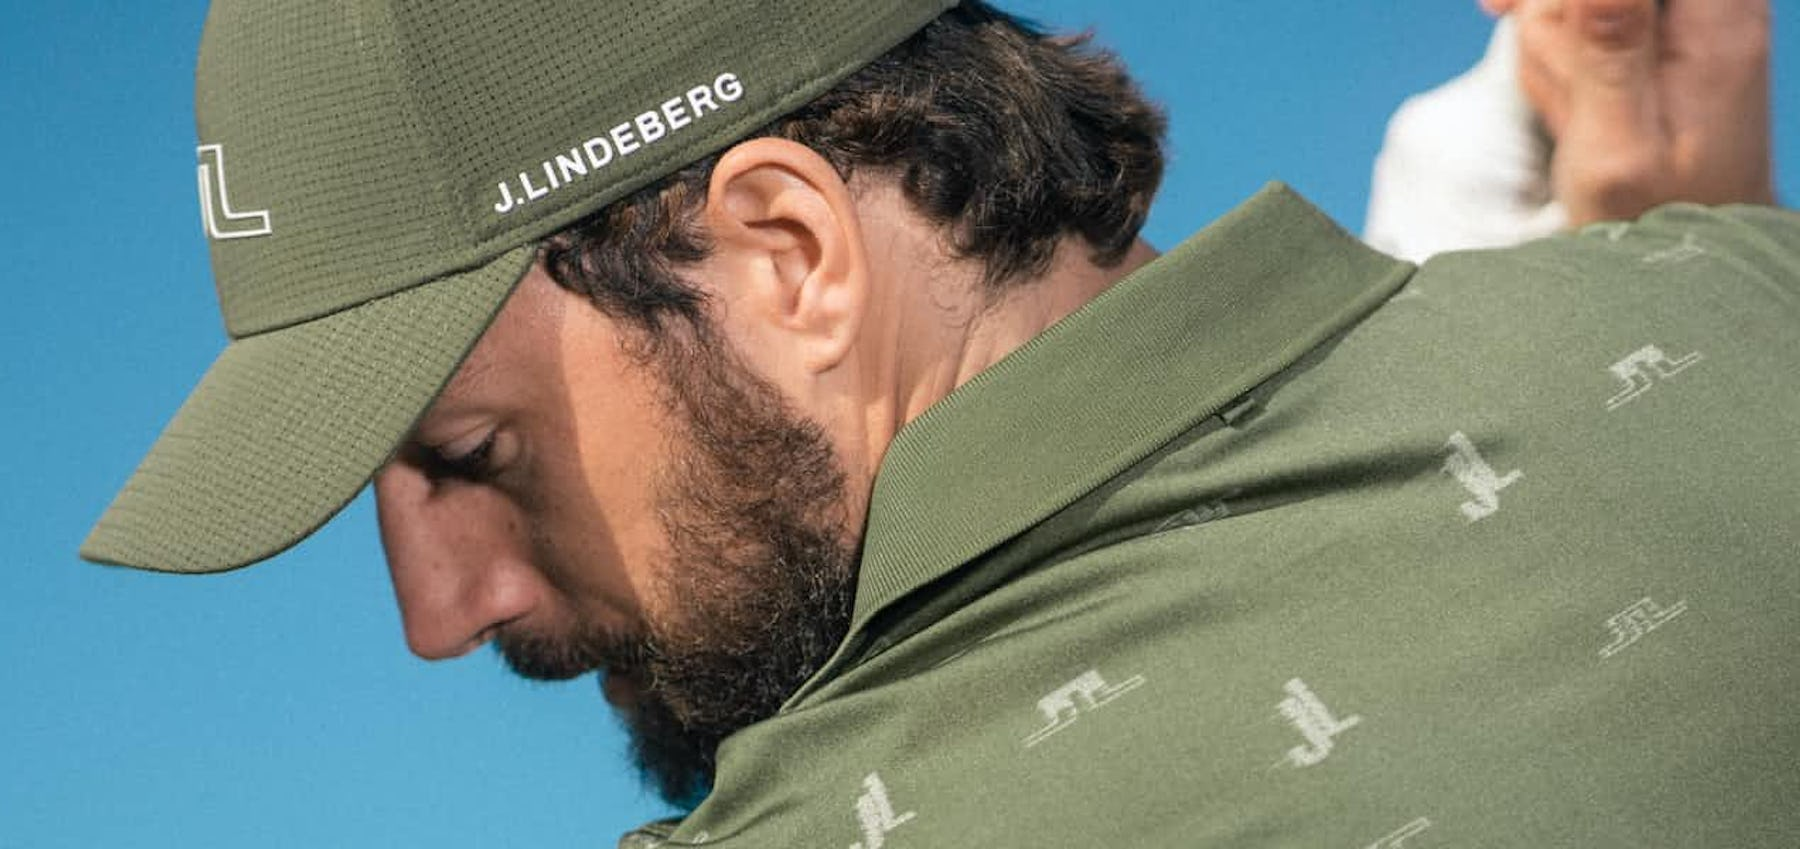 J.Lindeberg Spring/Summer '21 Collection | The lightest collection in golf. Ever.